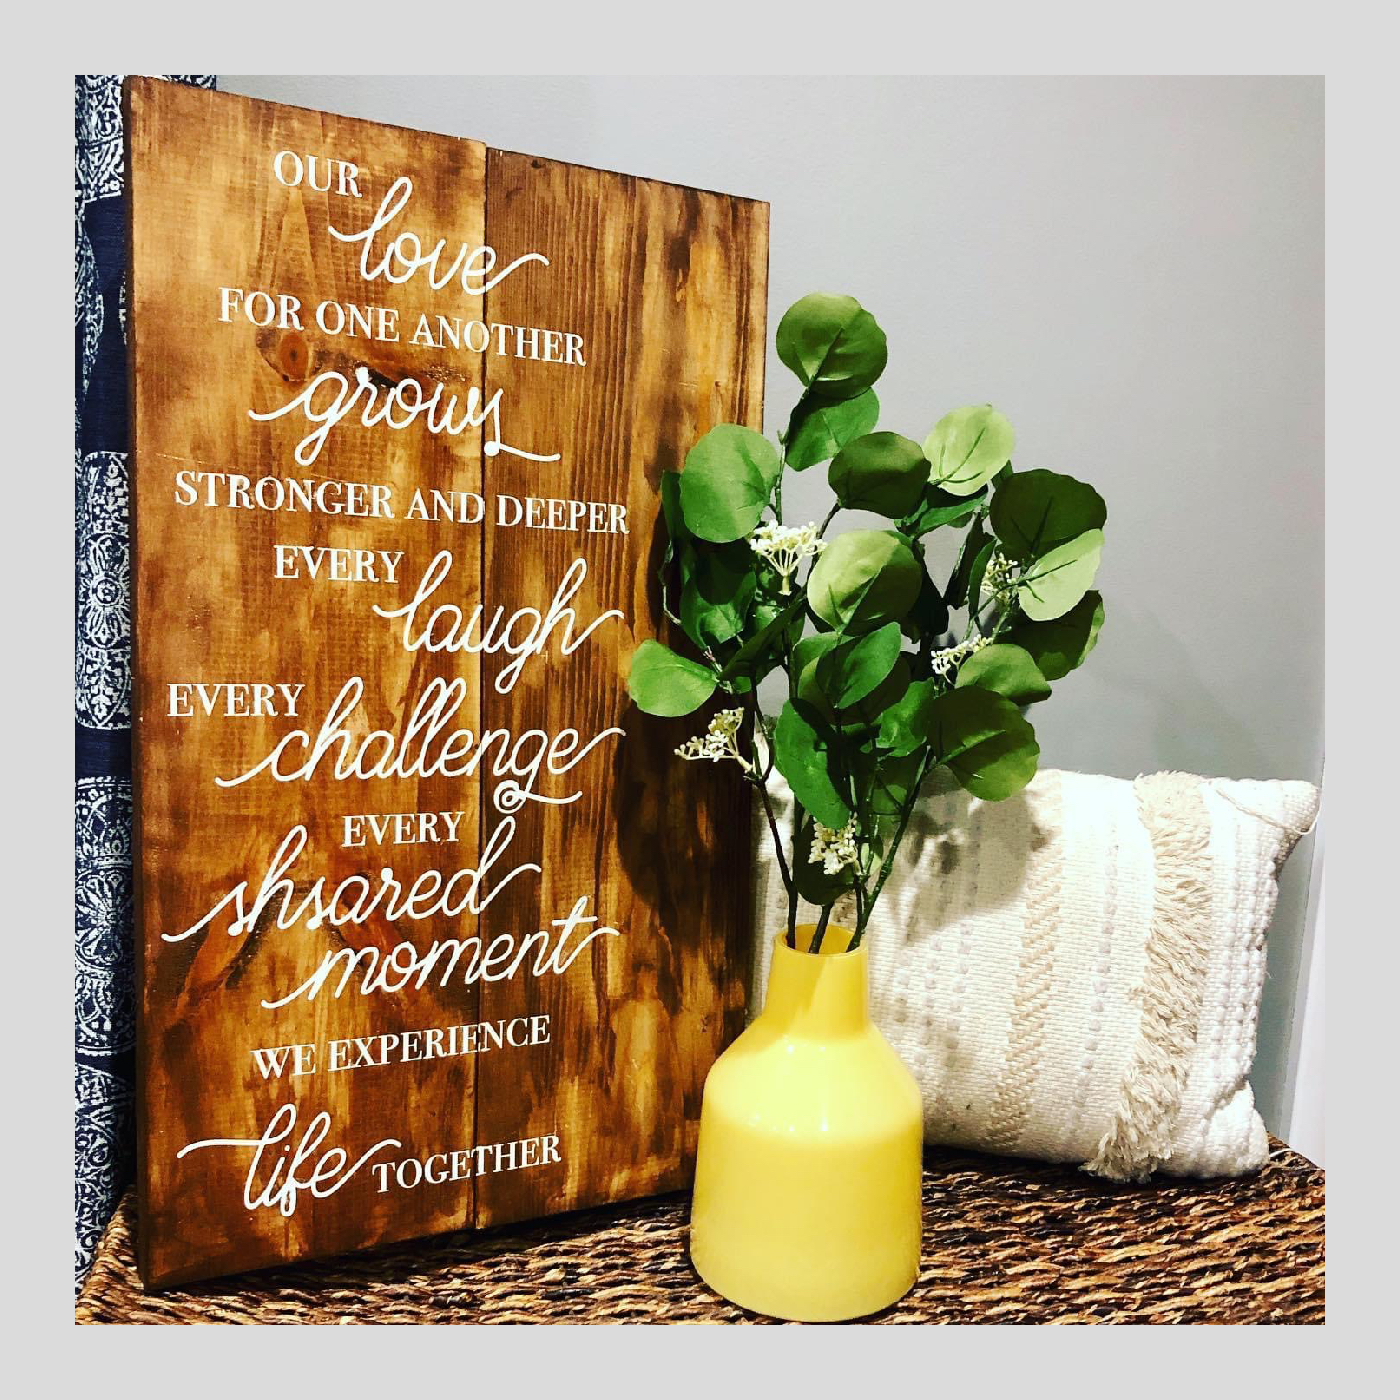 Our Love for One Another DIY wood project